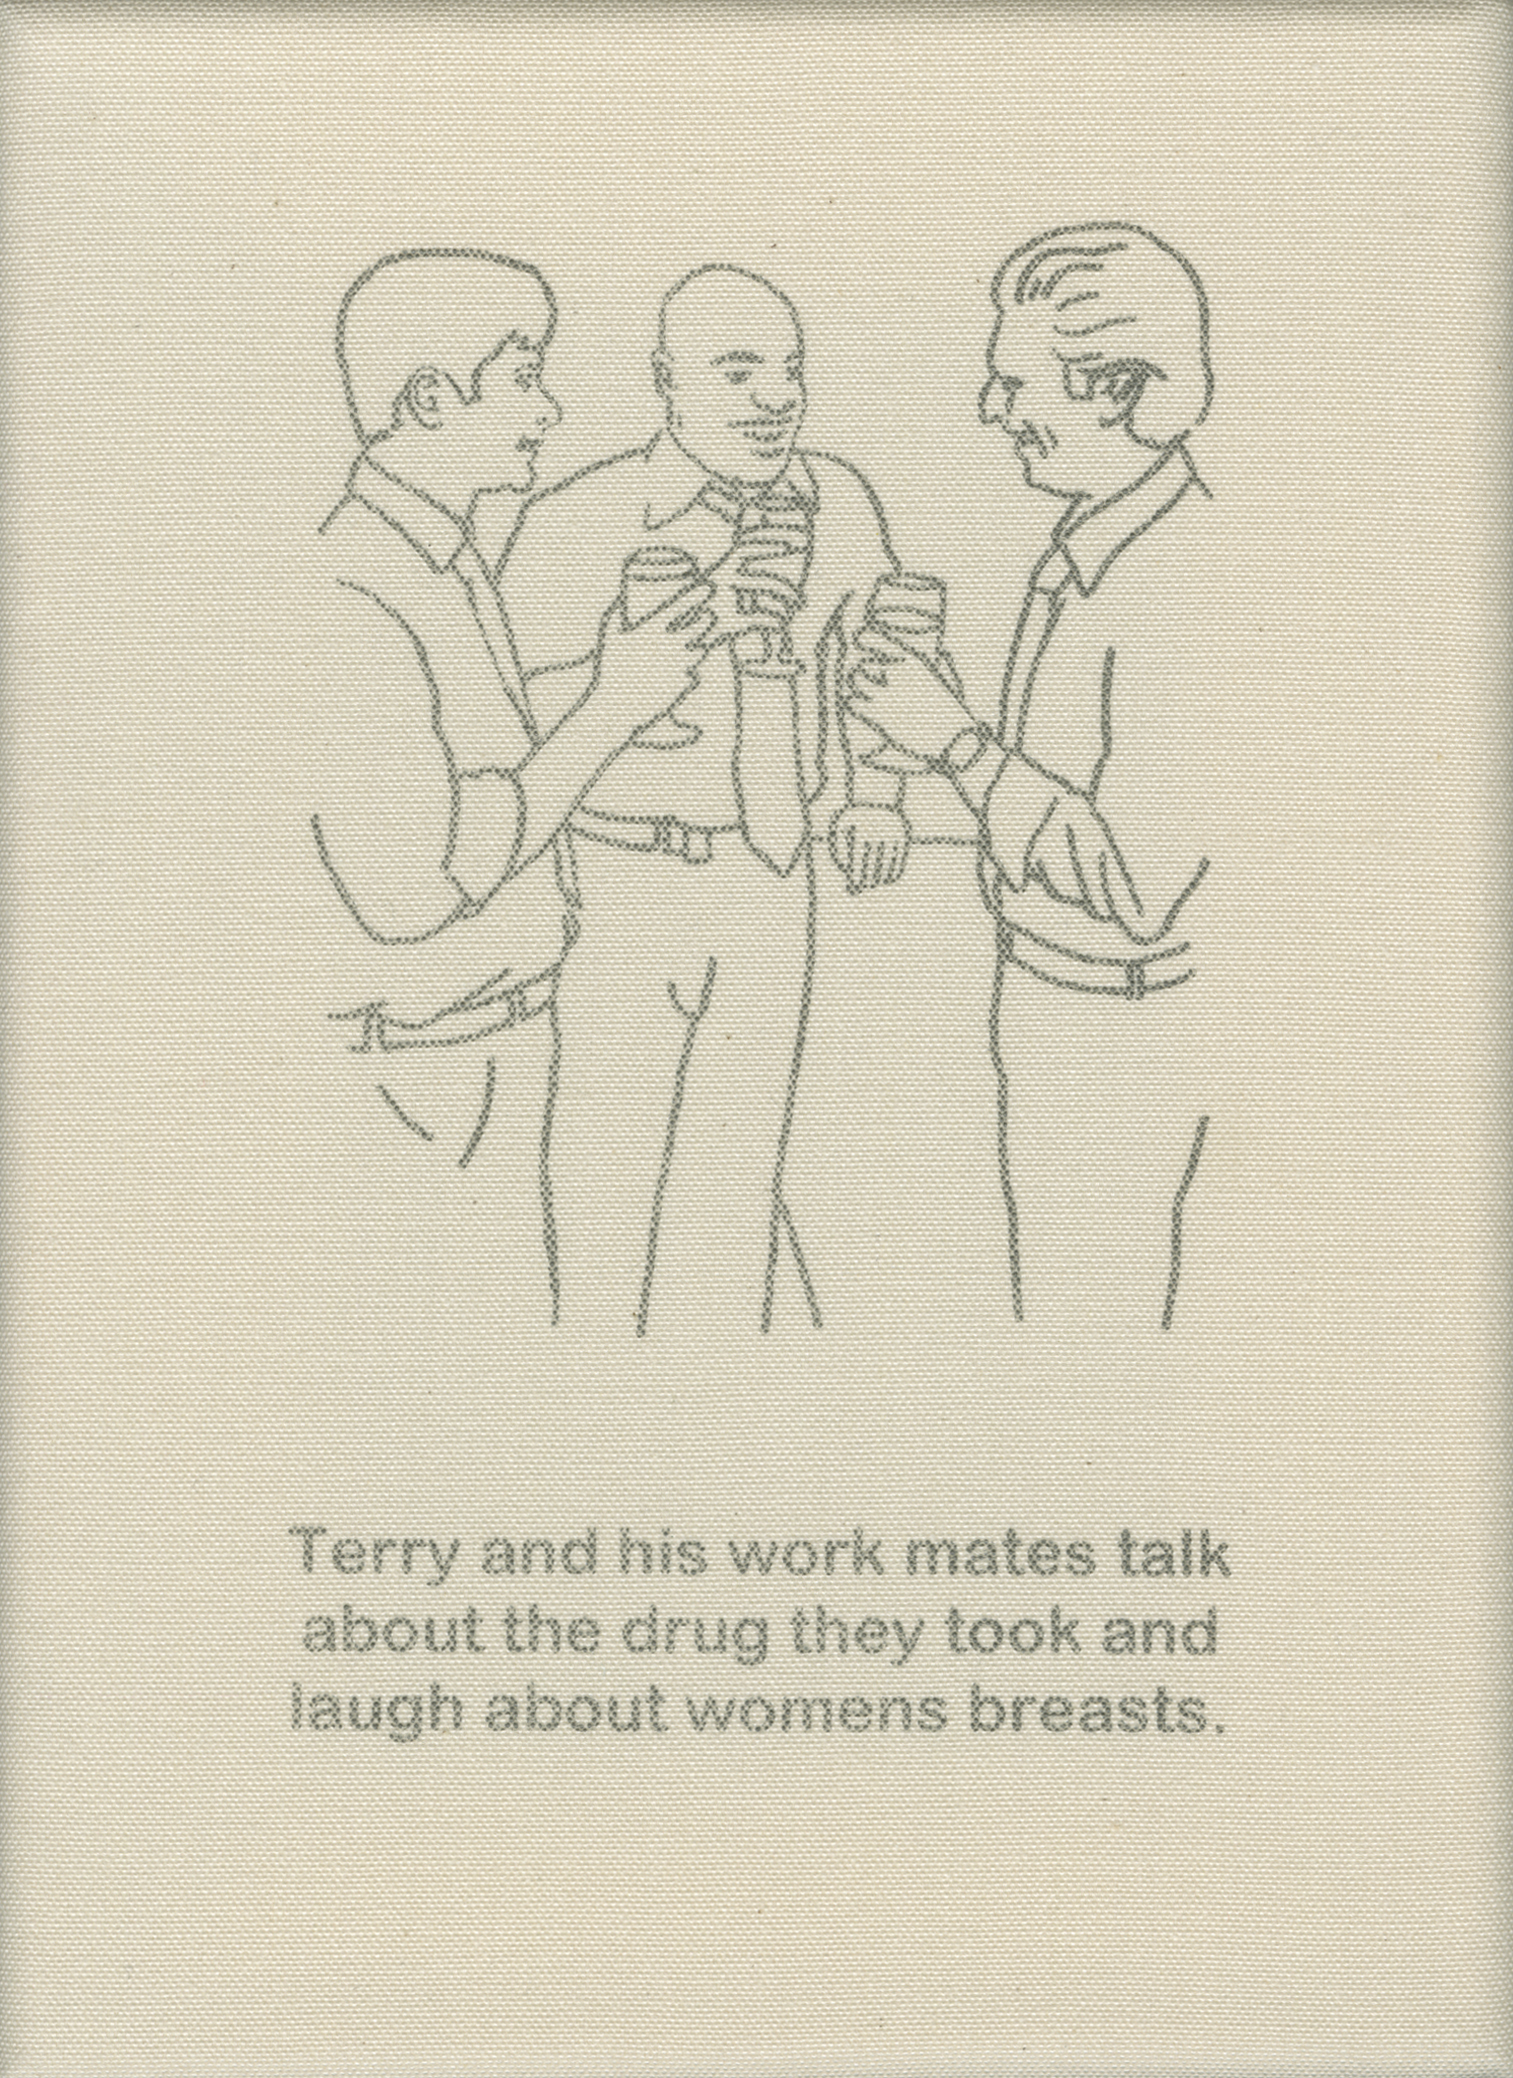 Terry and his work mates talk about the drug they took and laugh about women's breasts.